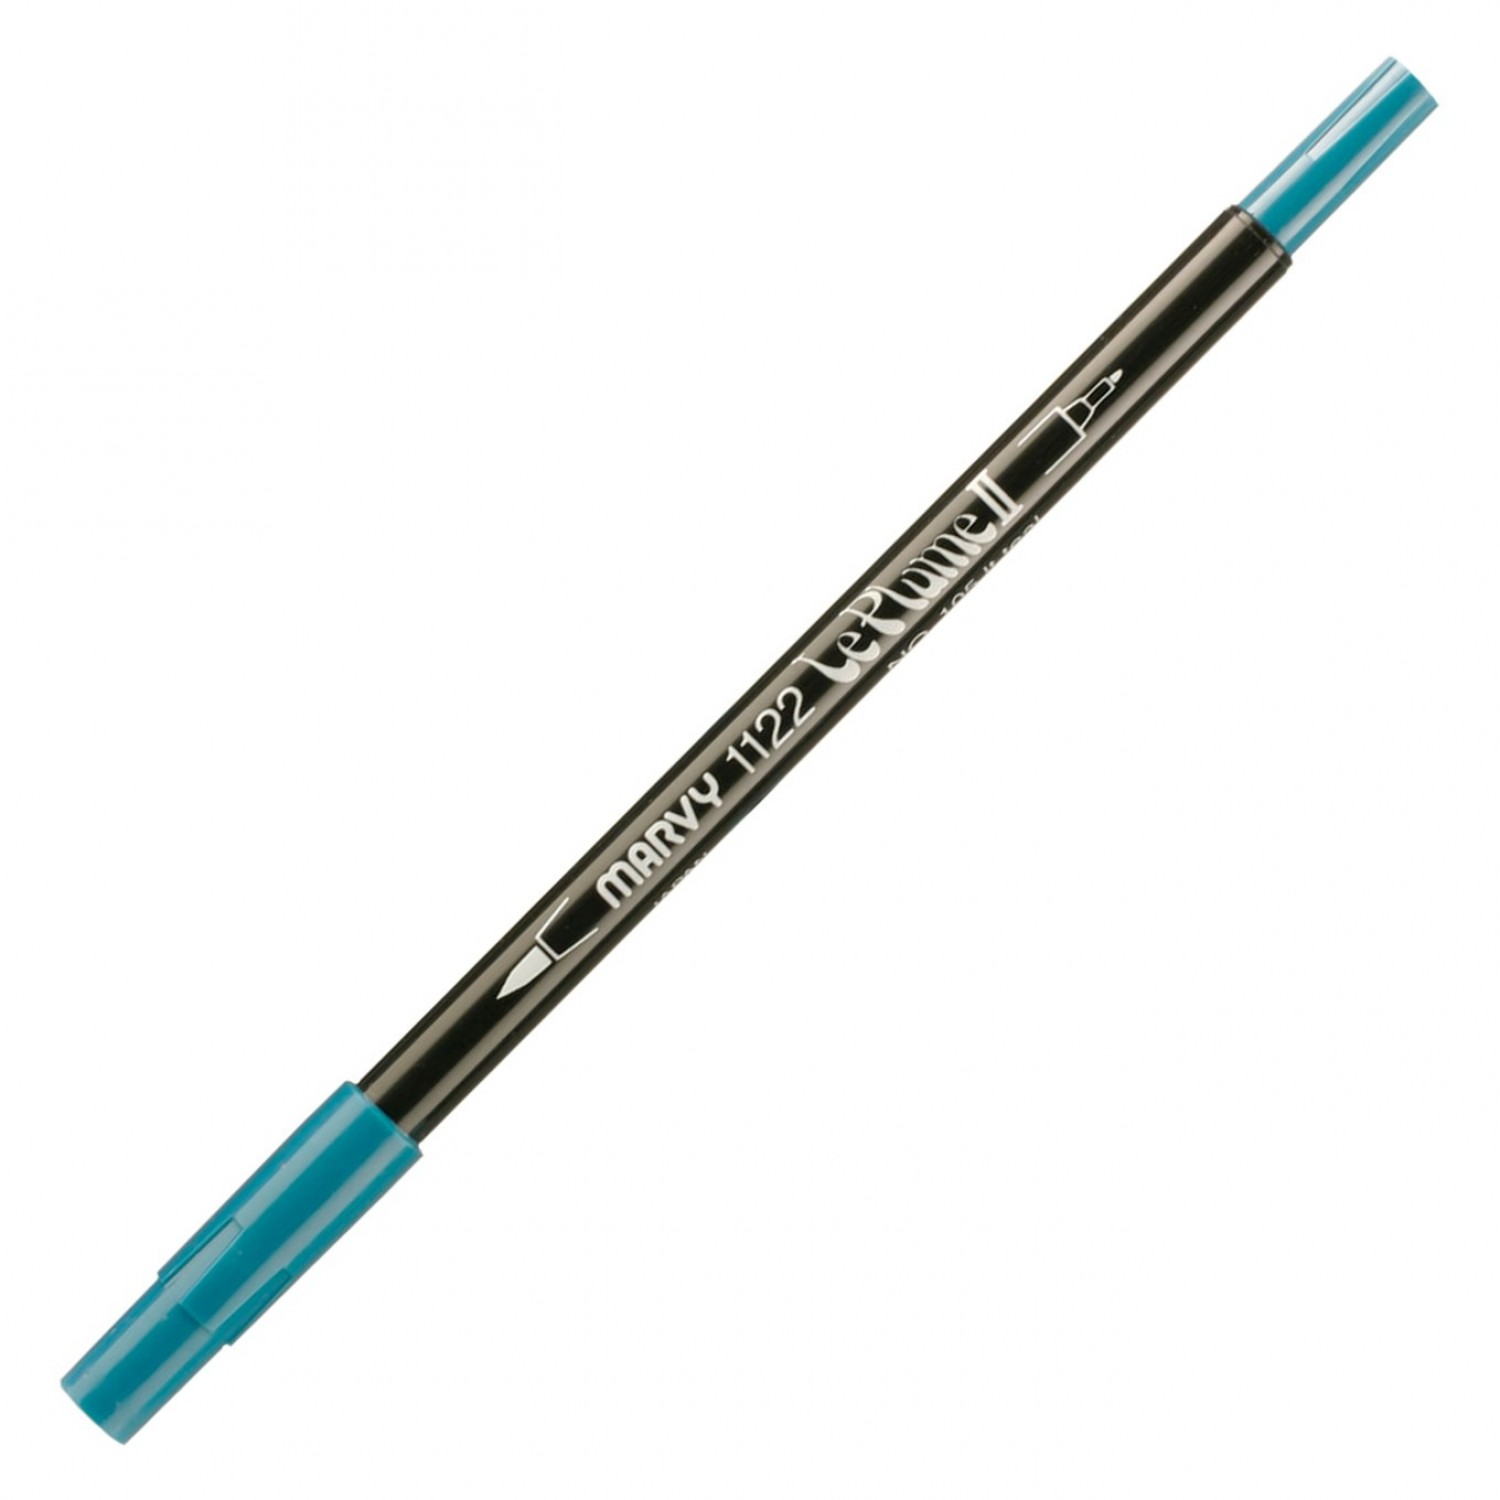 Marvy Le Plume II Double Ended Watercolor Marker, Light Teal